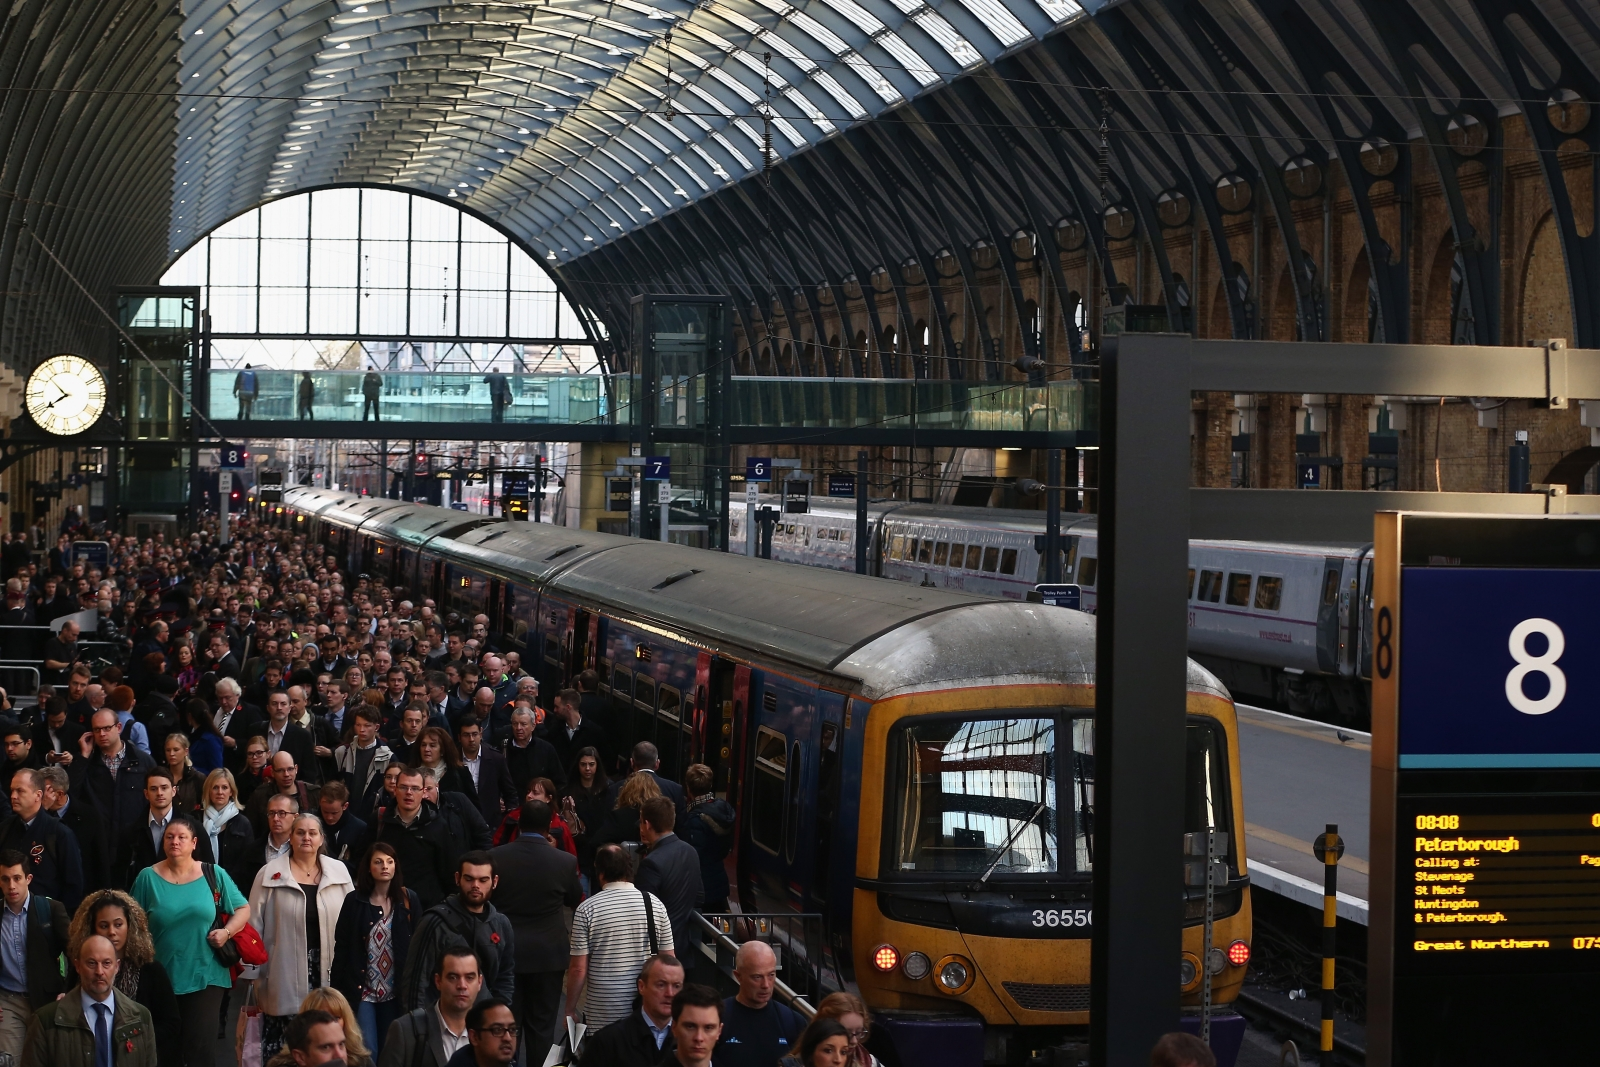 London transport crowds